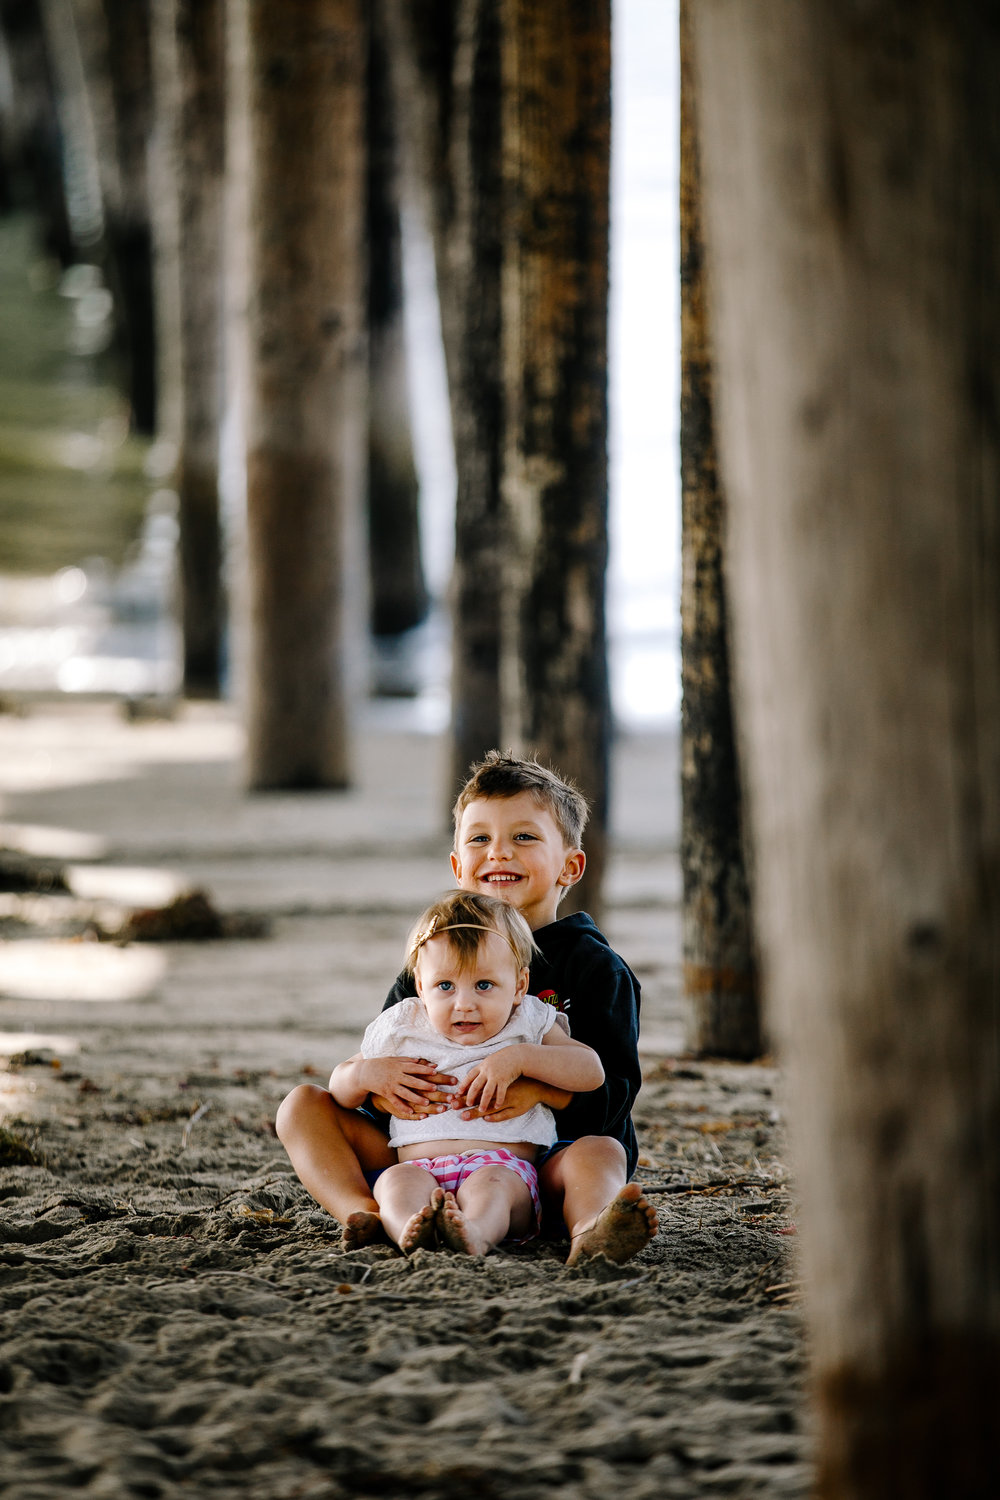 Archer Inspired Photography Lifestyle Family Capitola Beach California Documentary Photographer First Birthday Shoot-16.jpg